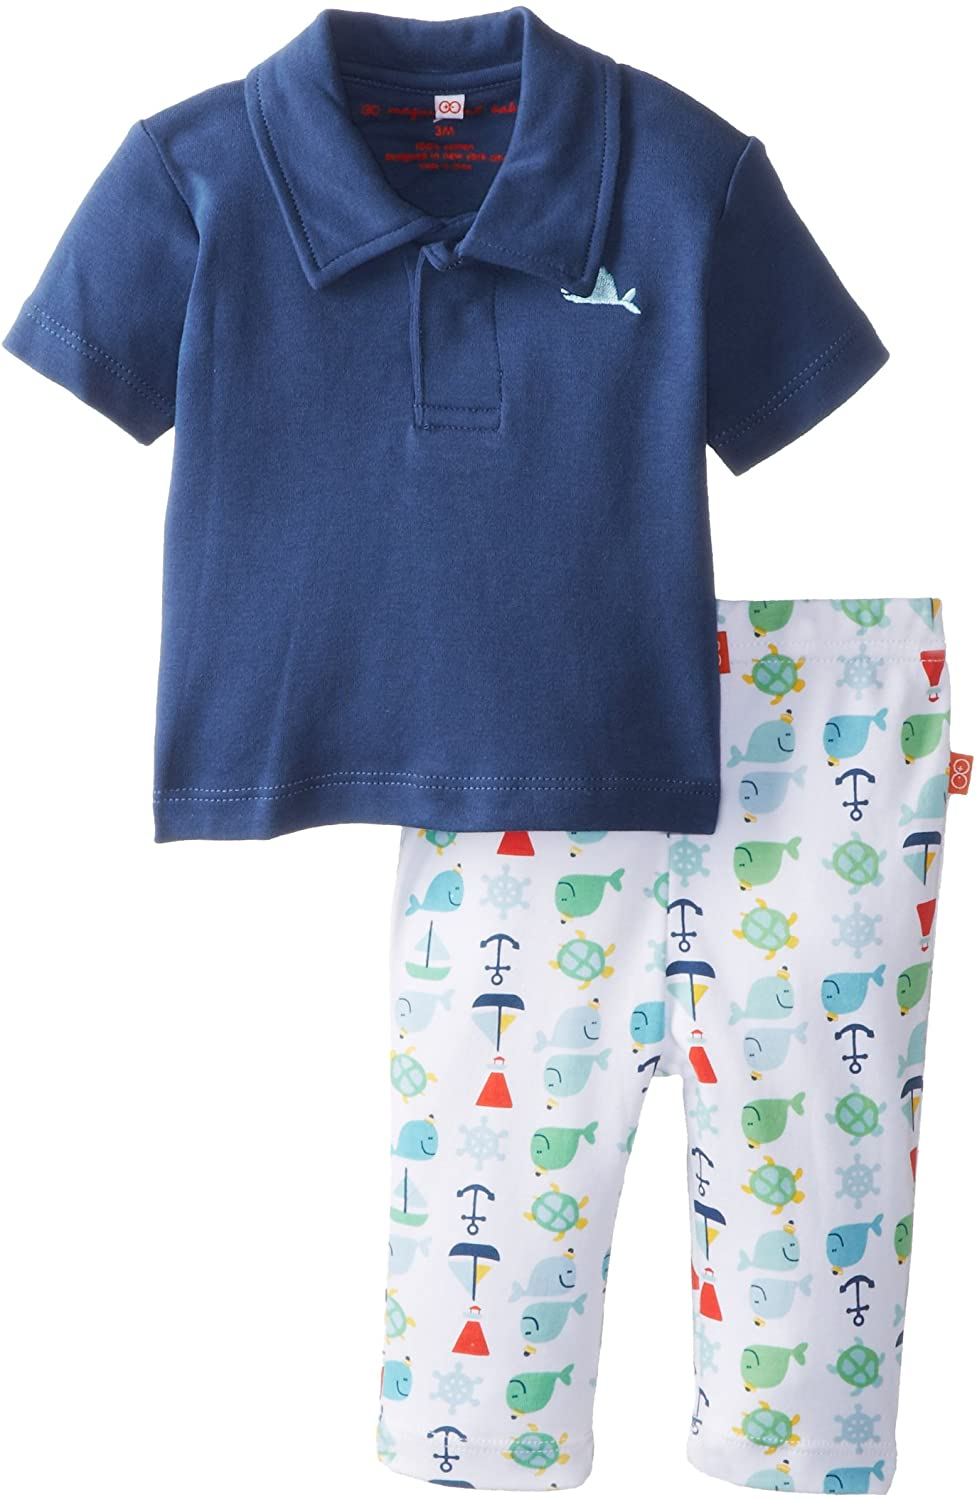 Magnificent Baby Baby-Boys Newborn Nantucket Polo Shirt and Pants Set, Navy Blue, 9 Months